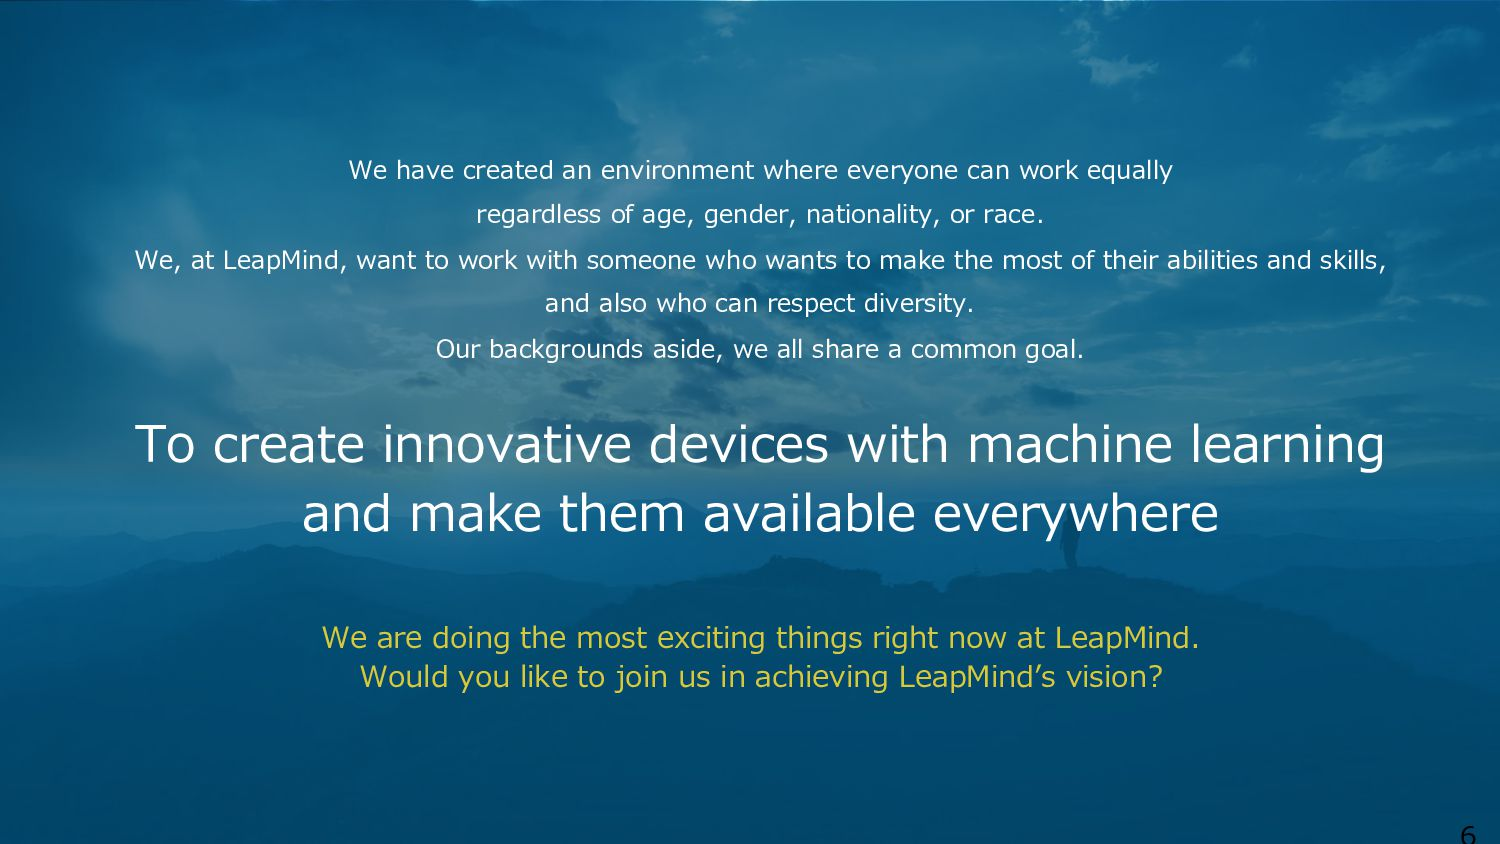 WE'RE HIRING https://leapmind.io/ https://leapm...